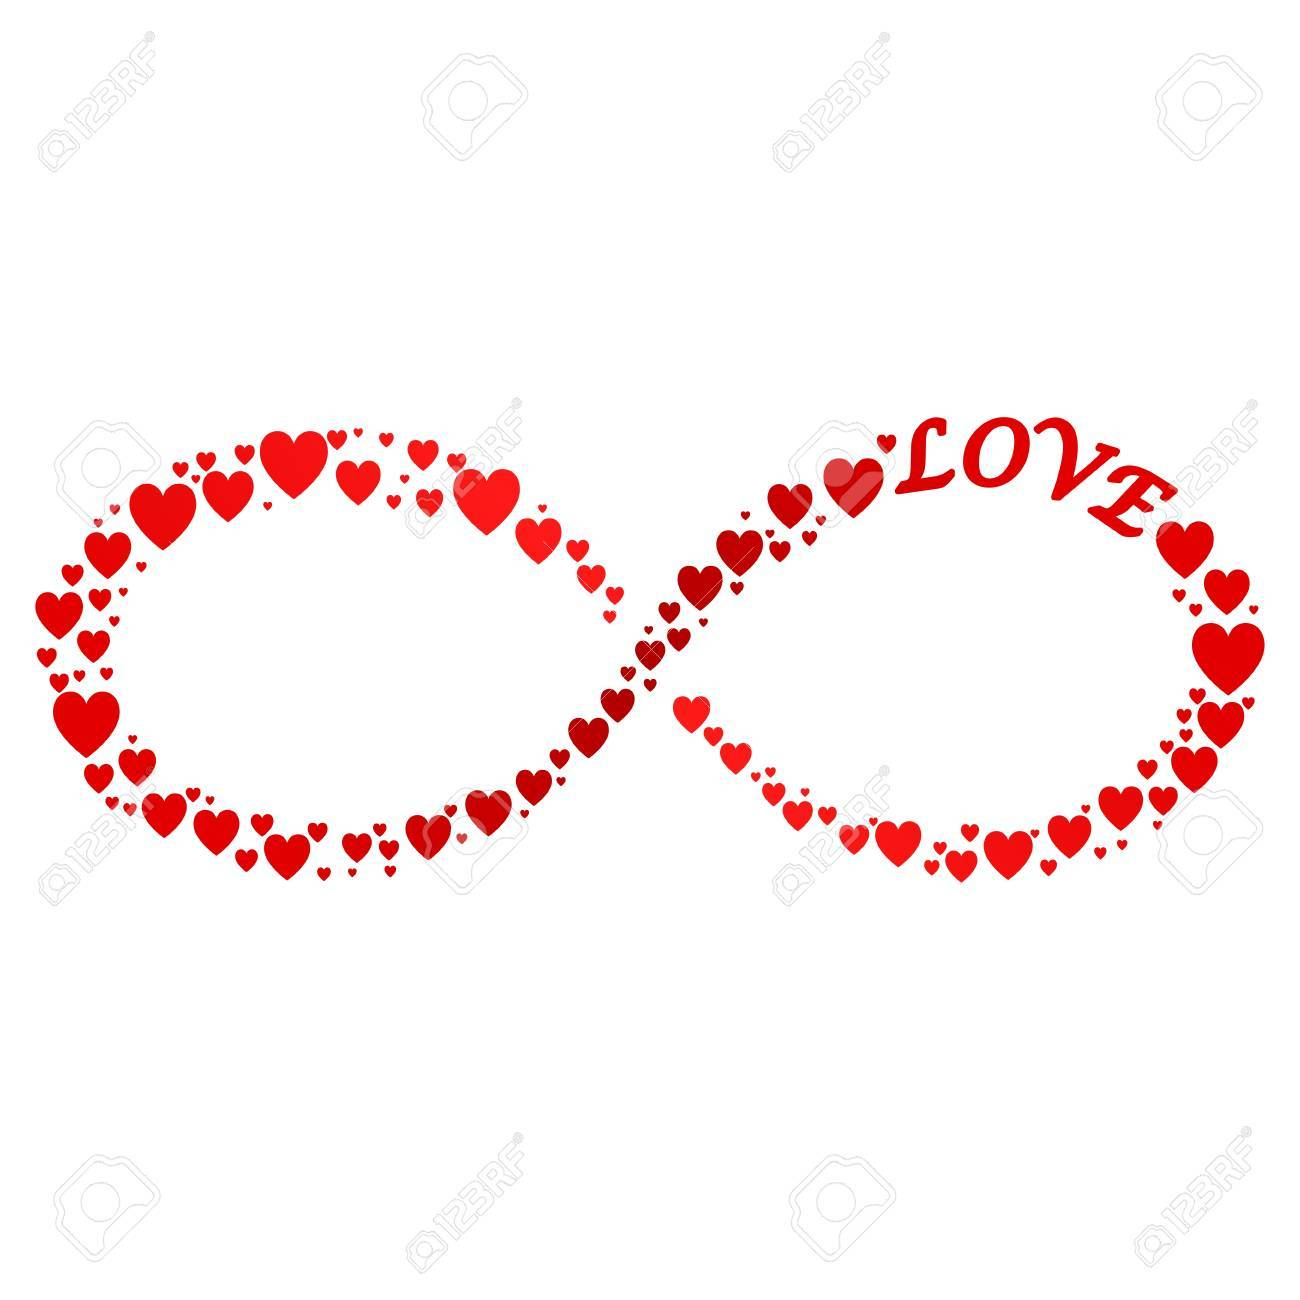 Infinity sign with hearts royalty free cliparts vectors and stock infinity sign with hearts stock vector 73904448 buycottarizona Gallery